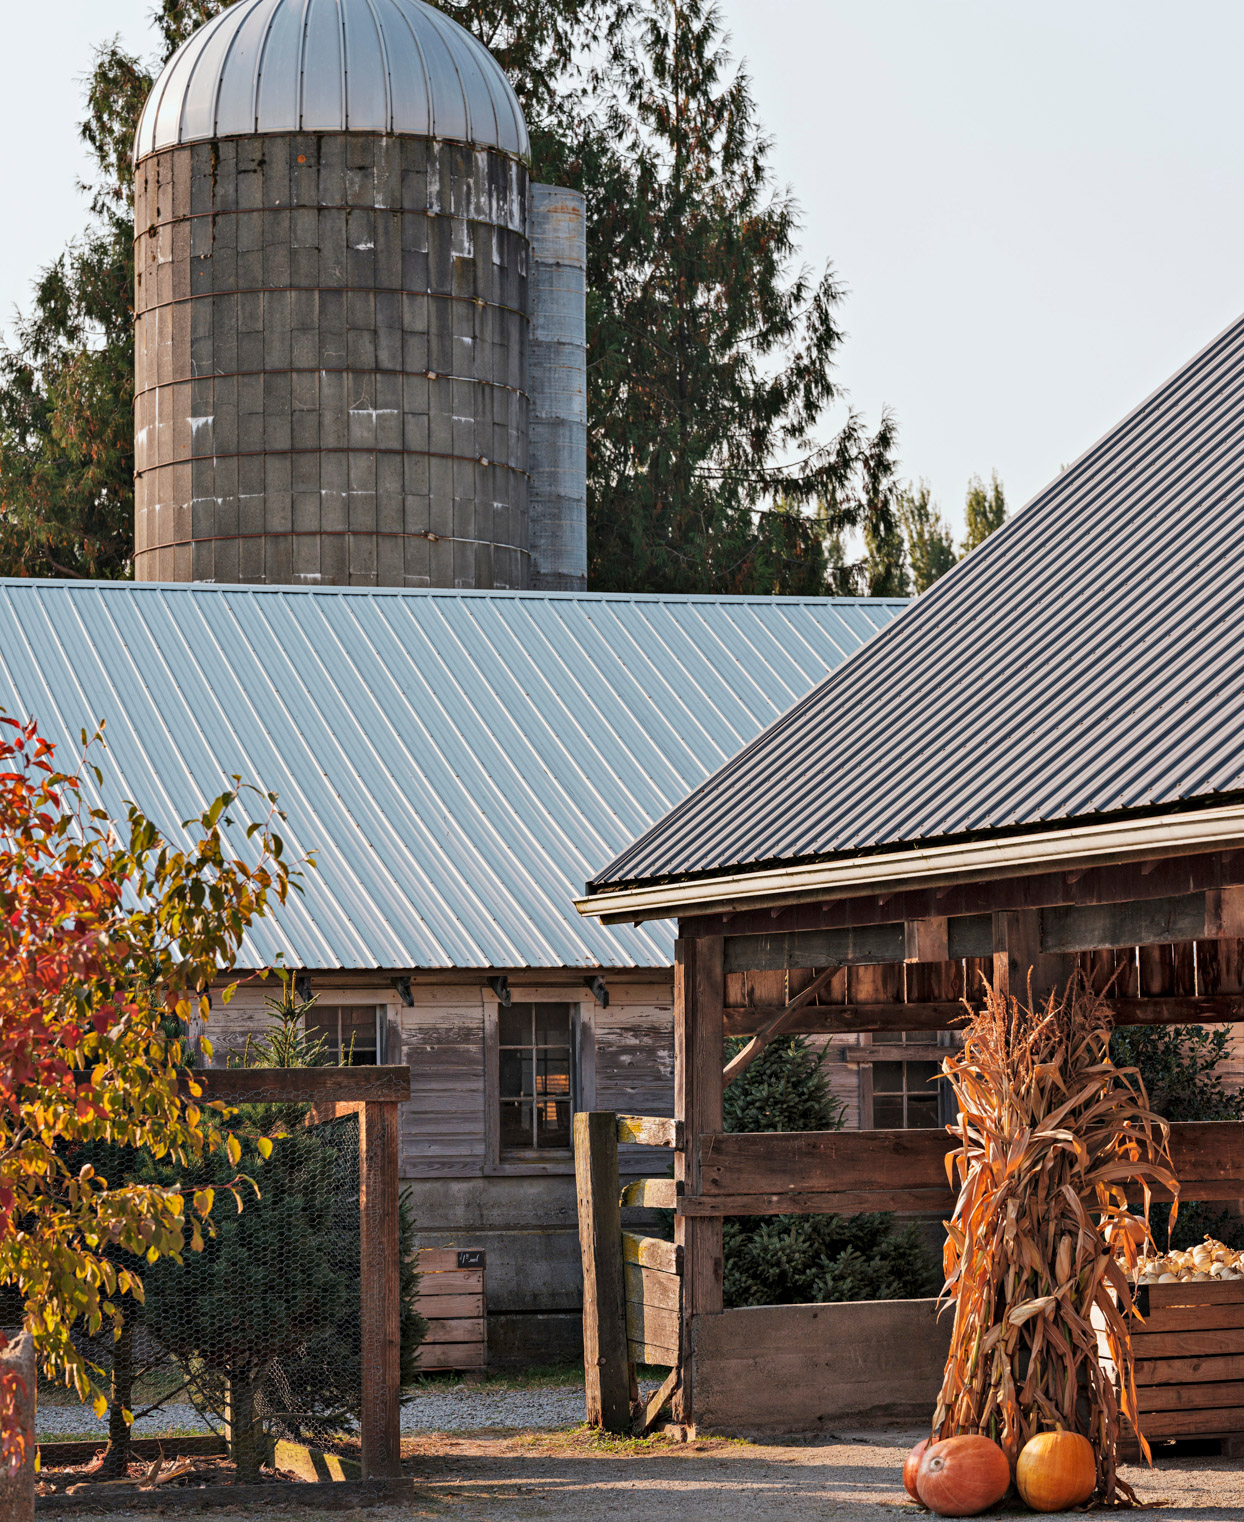 pumpkin patch barn and shops